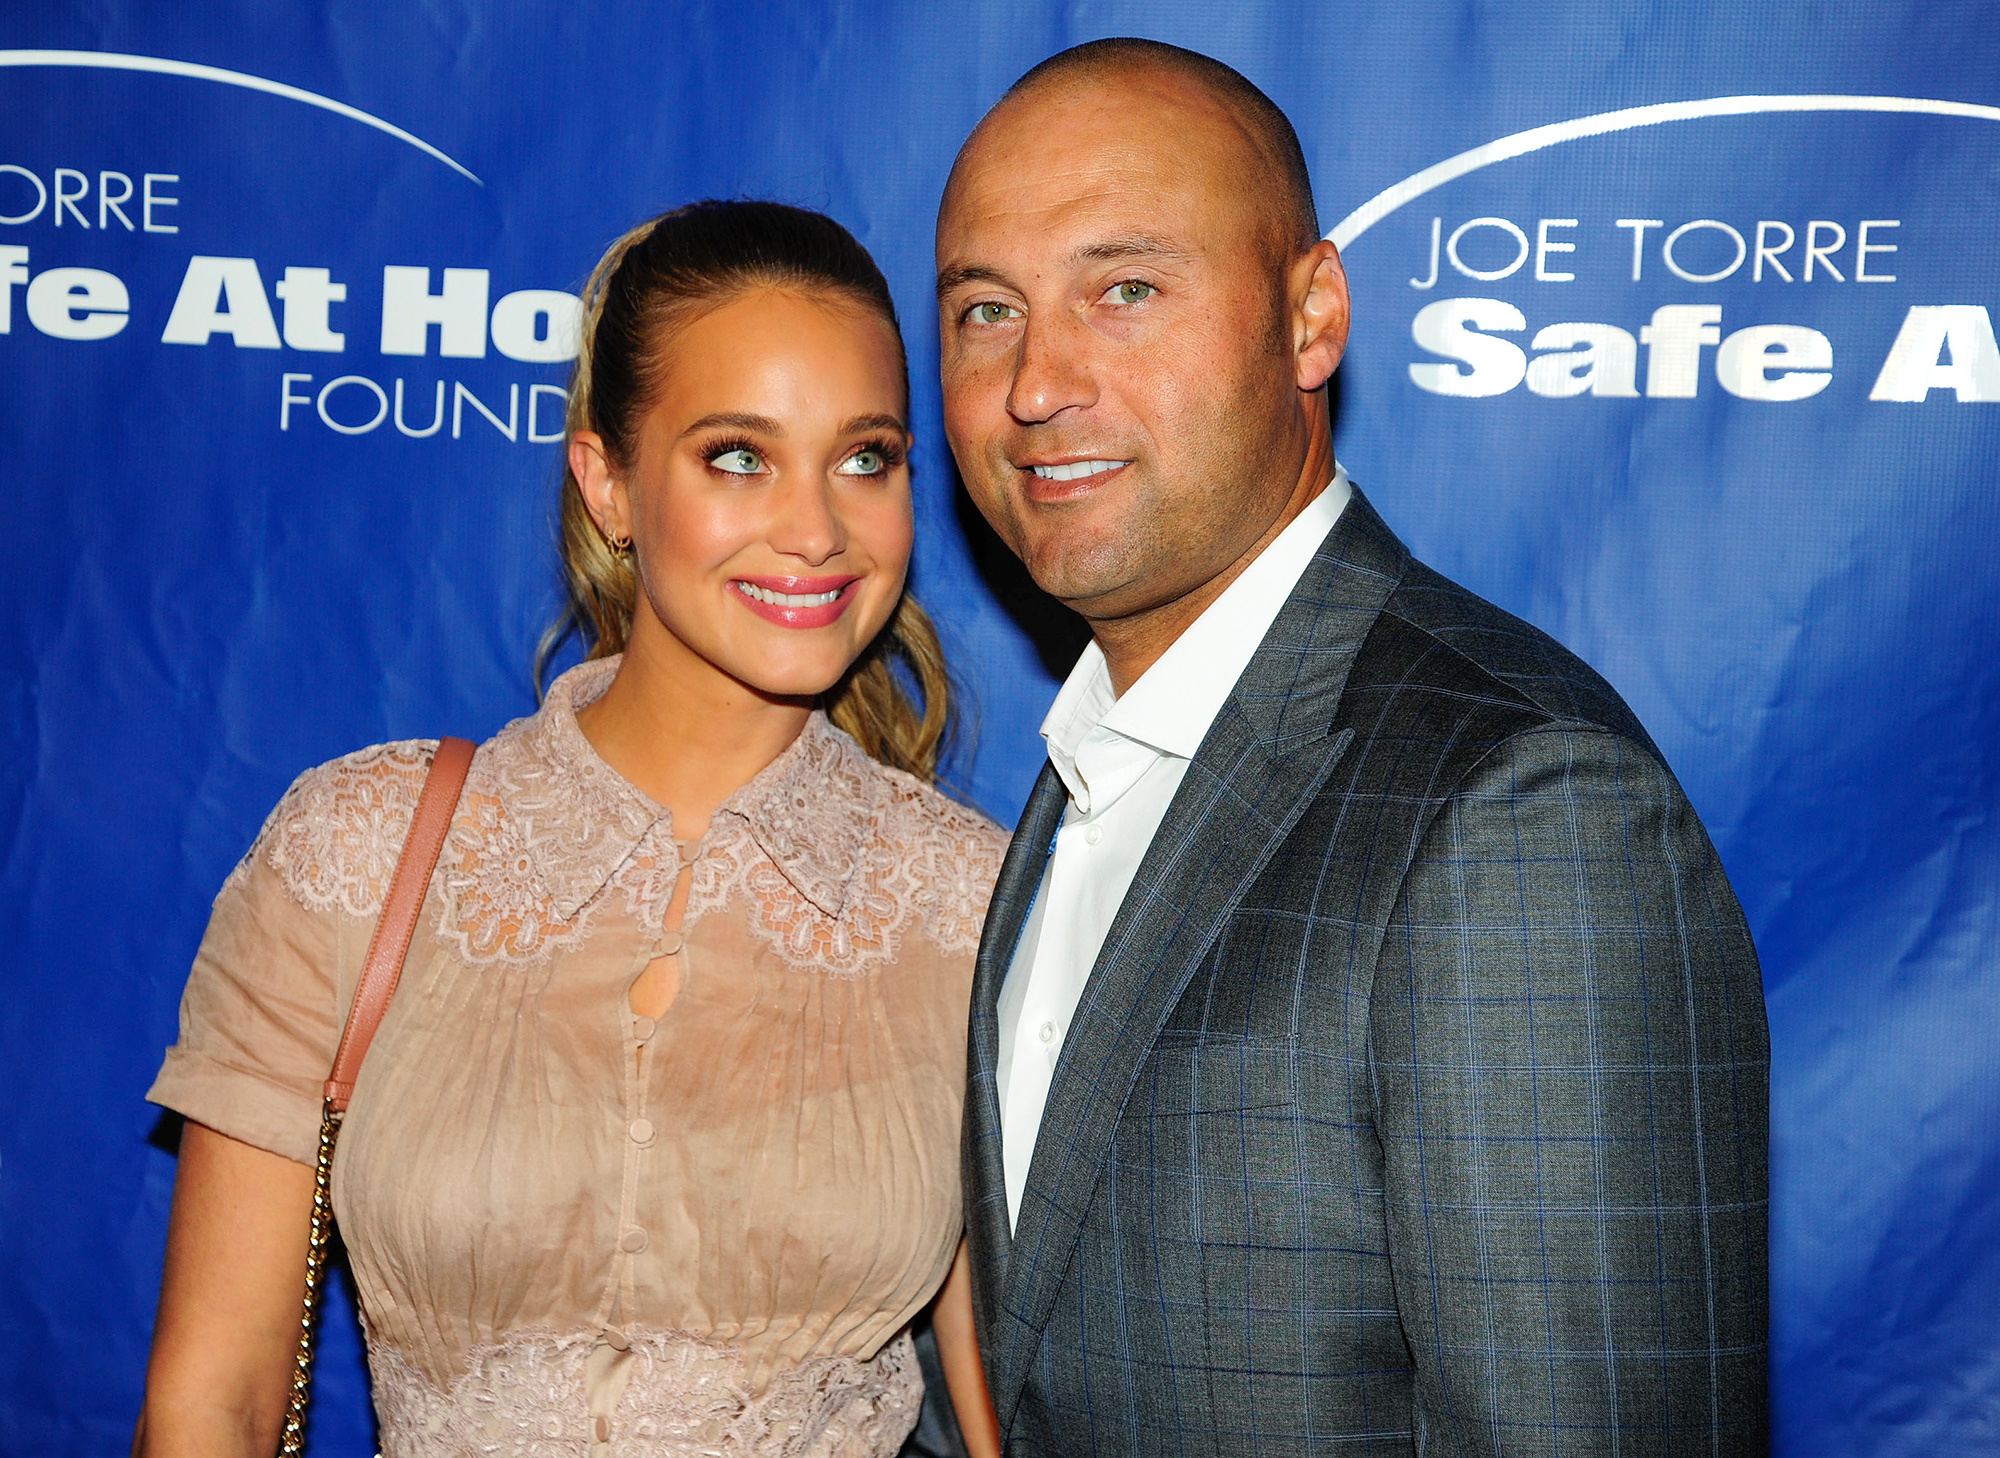 Joe Torre Safe At Home Foundation's 14th Annual Celebrity Gala